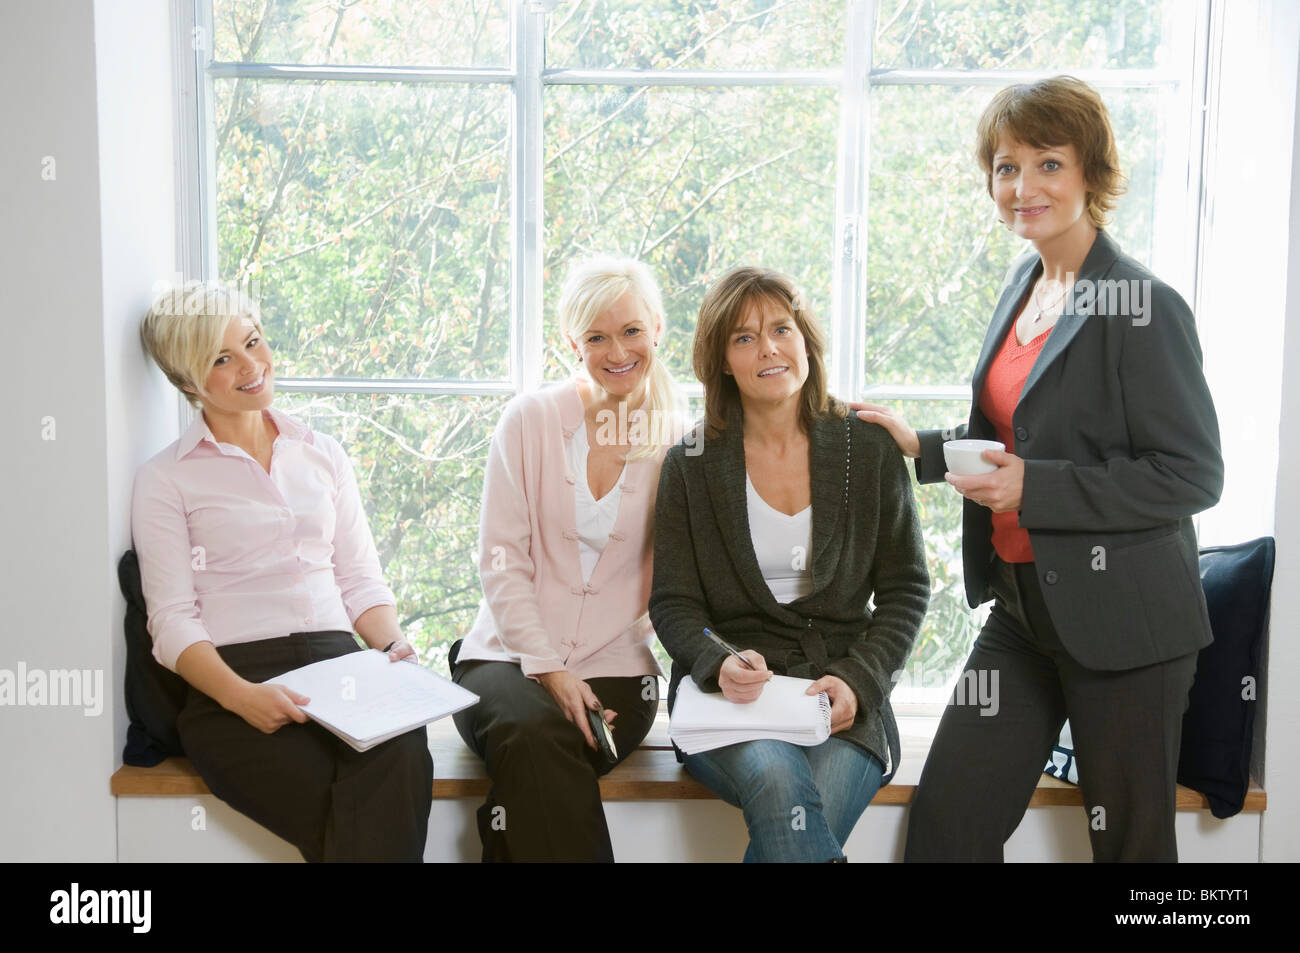 Pause at work - Stock Image